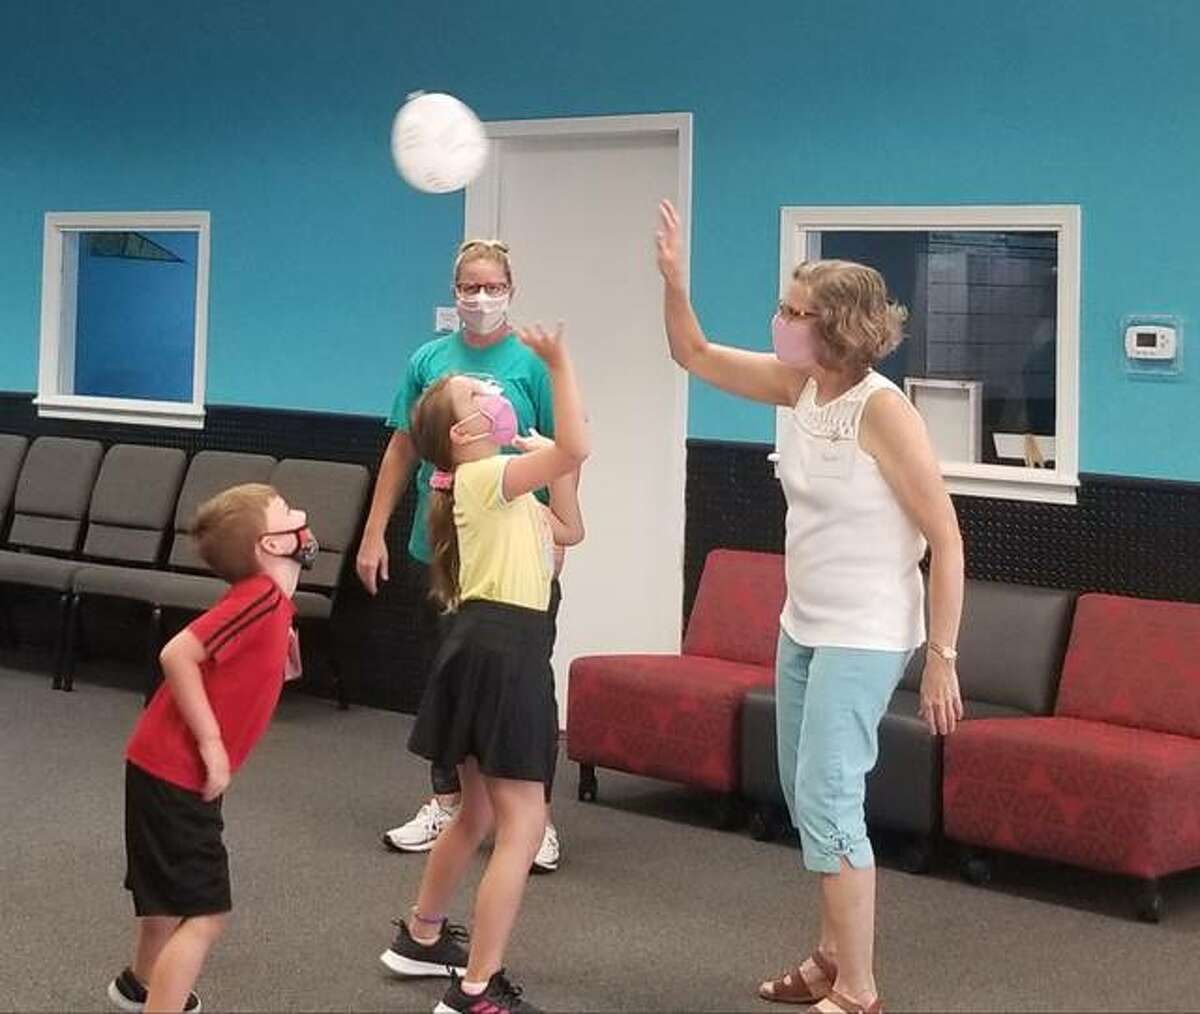 Tuesday's camp began with an ice breaker game where students had to keep a balloon in the air. Children practiced reading and learned the 10 Commandments when they had to read one of the commandments written if the balloon hit the floor.